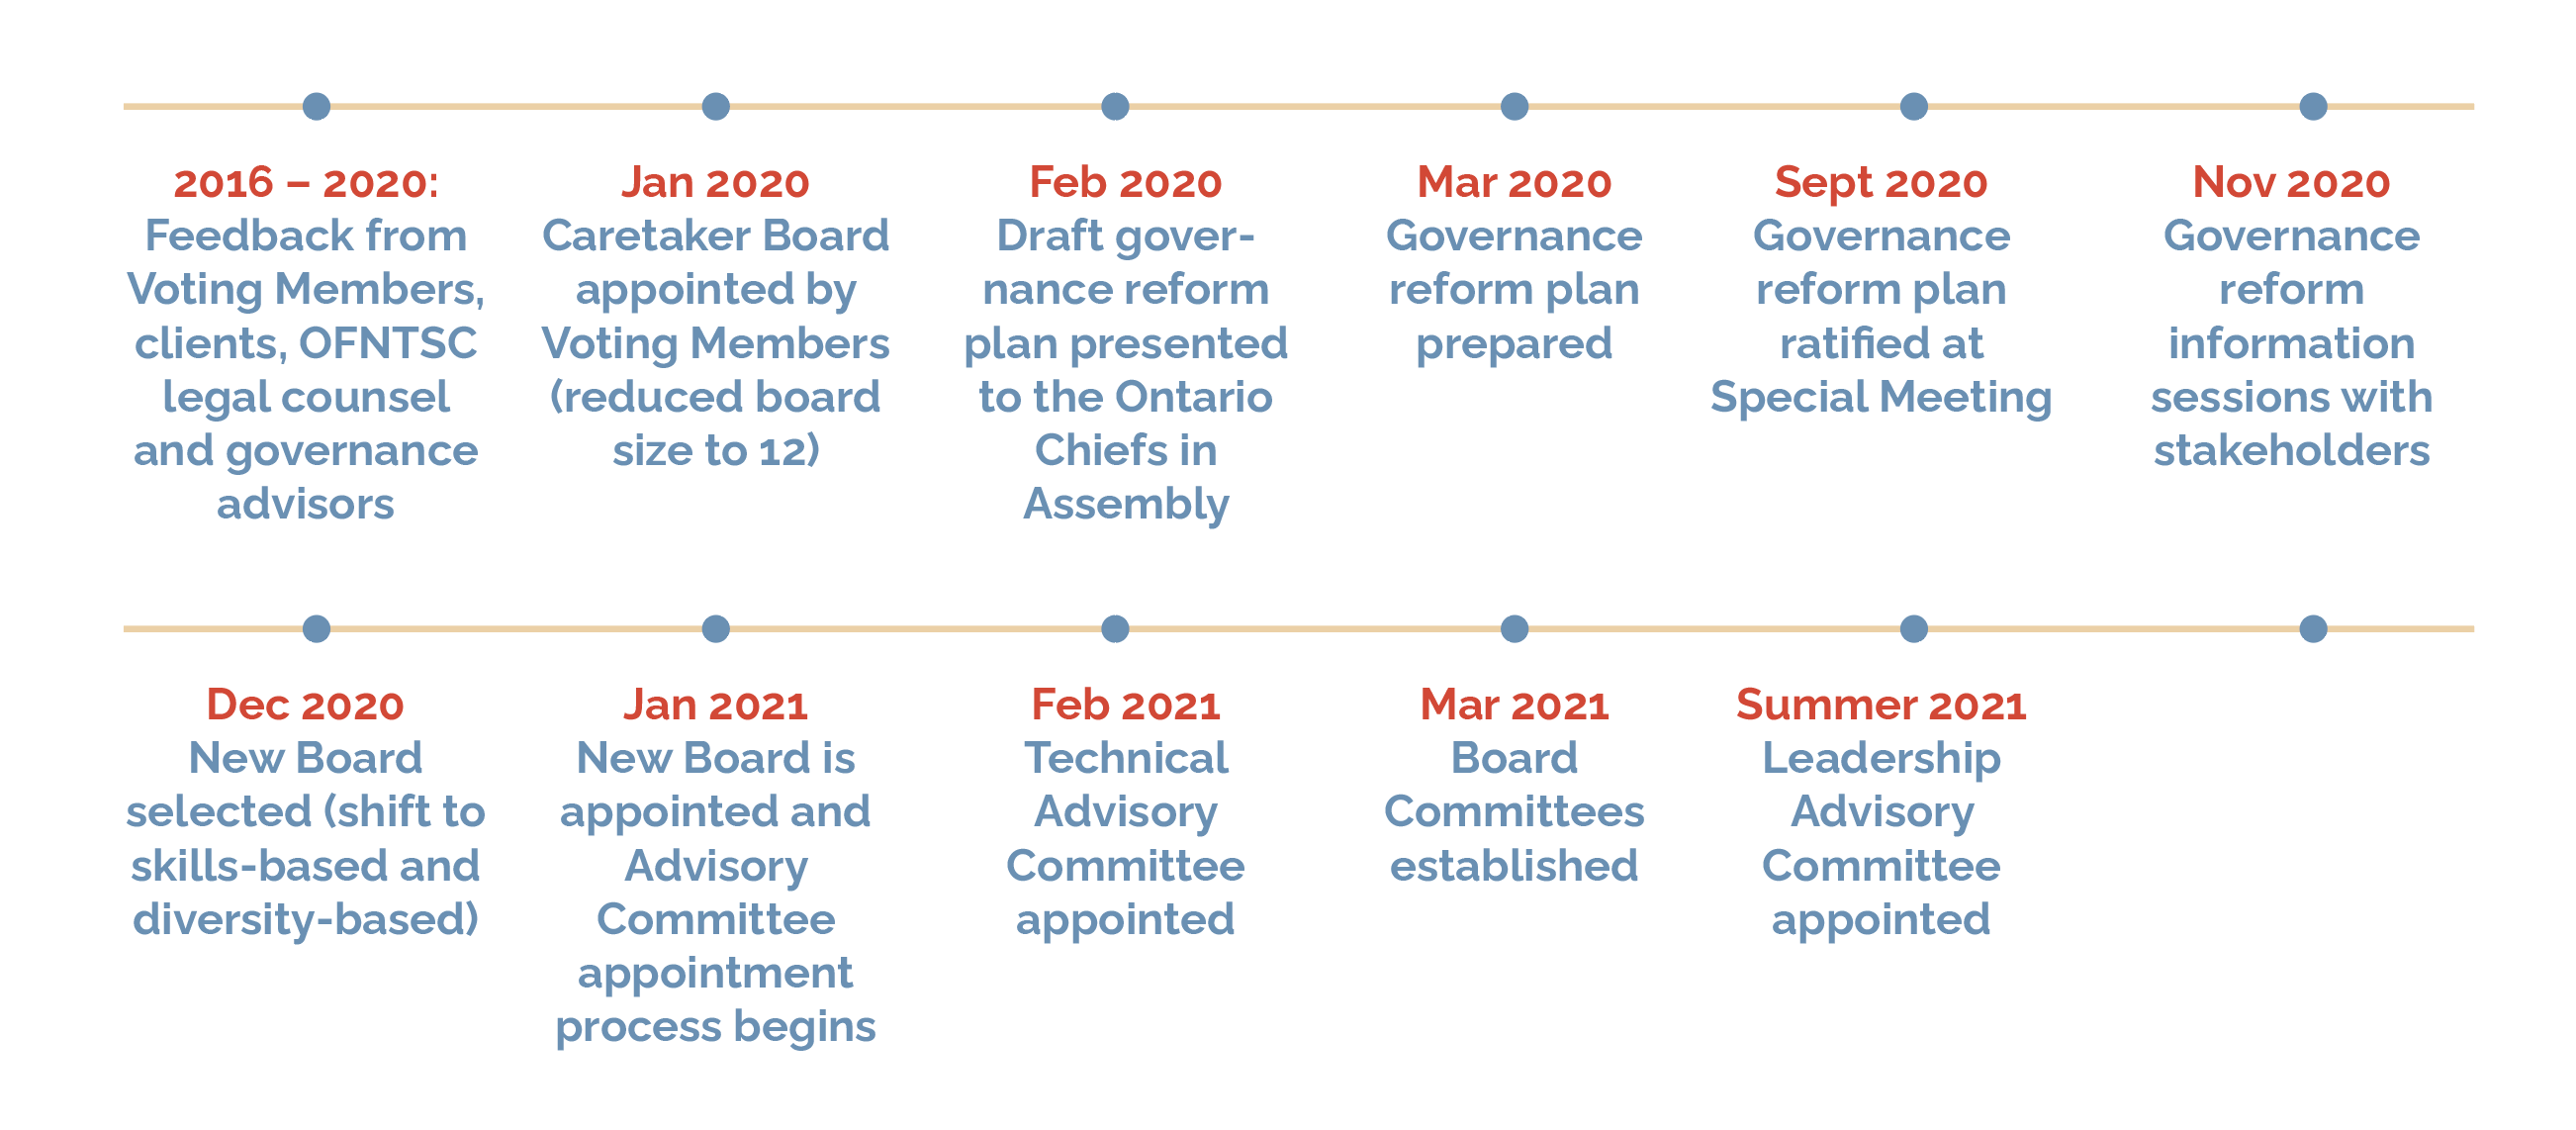 This graphic shows the timeline of OFNTSC's governance changes since 2016